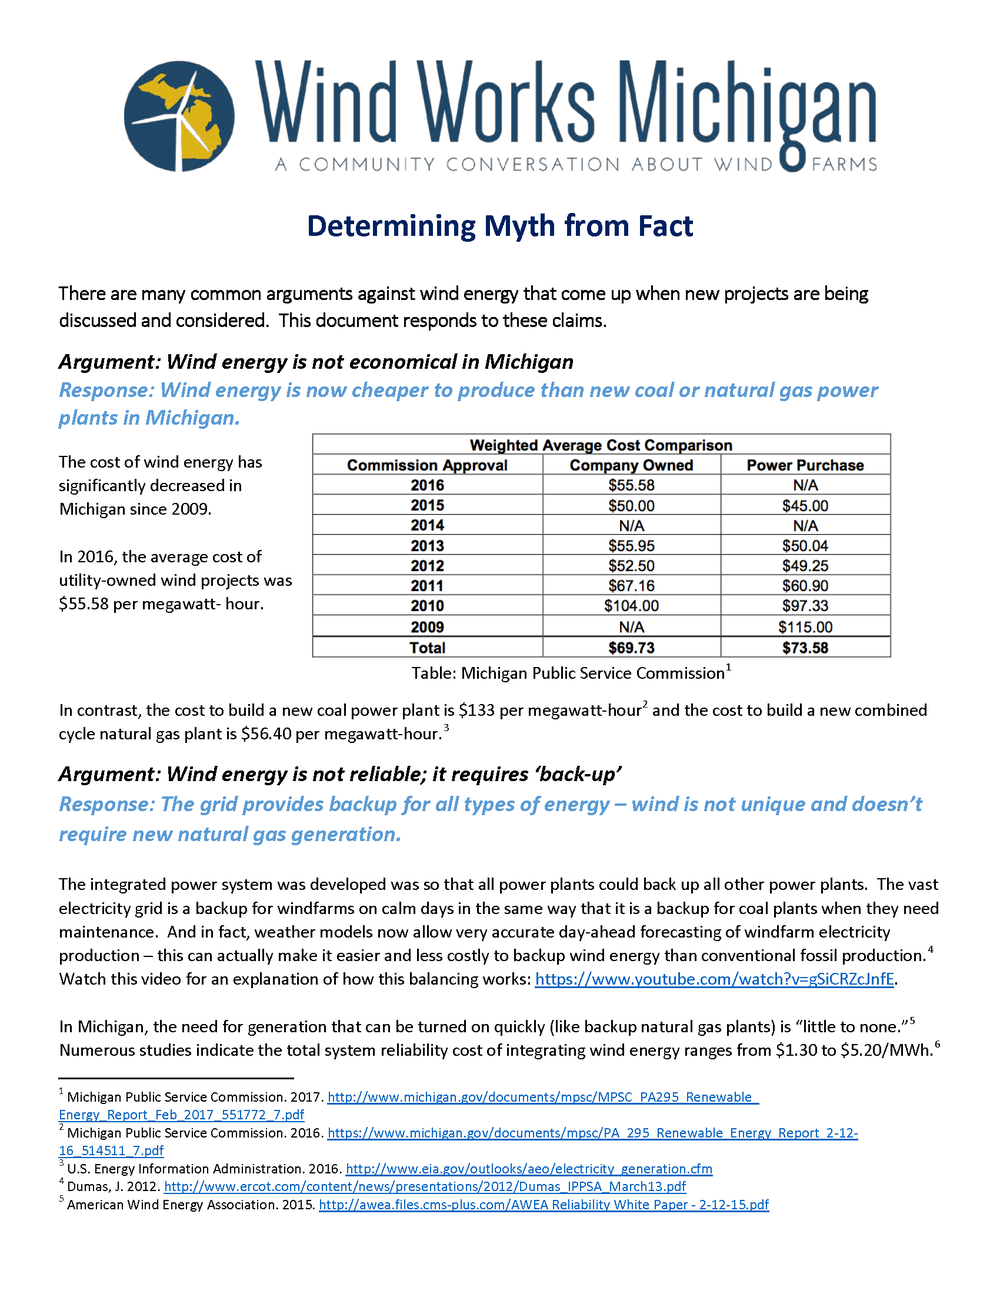 WWM Myths v Fact_Page_1.png